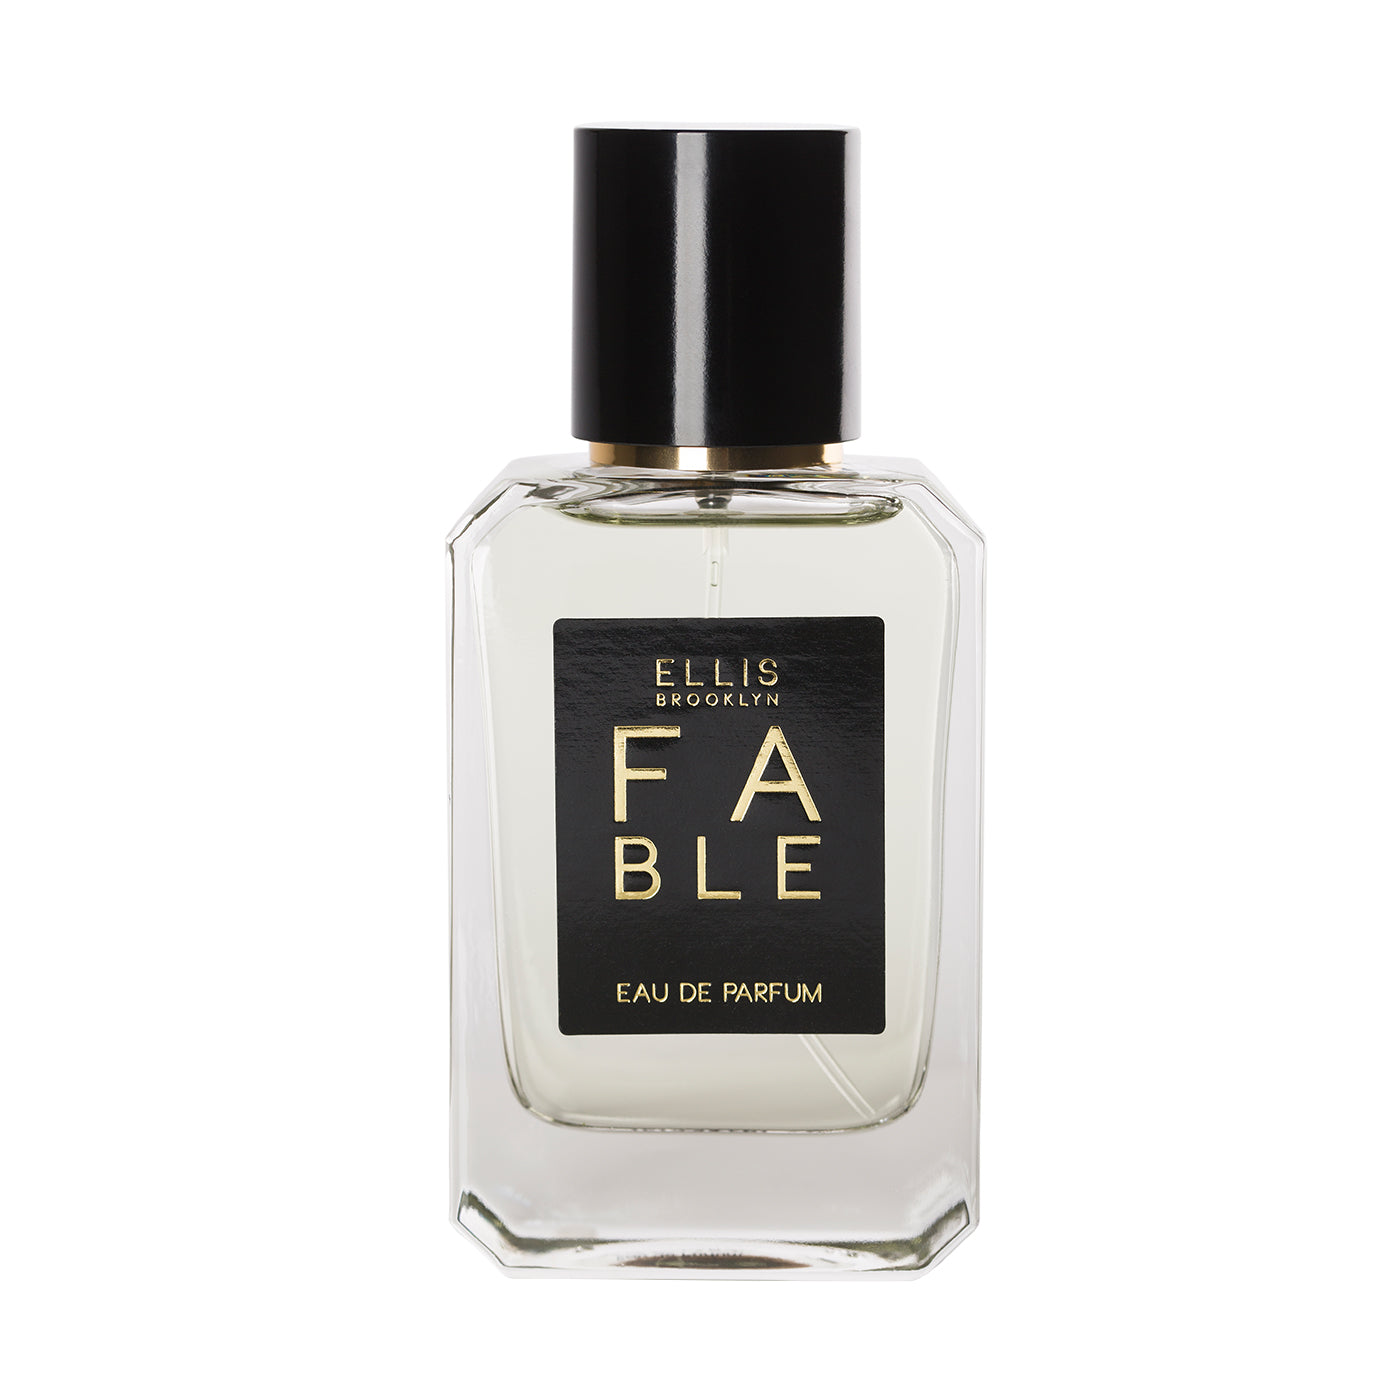 Ellis Brooklyn Eau de Parfum - Fable 1.7oz